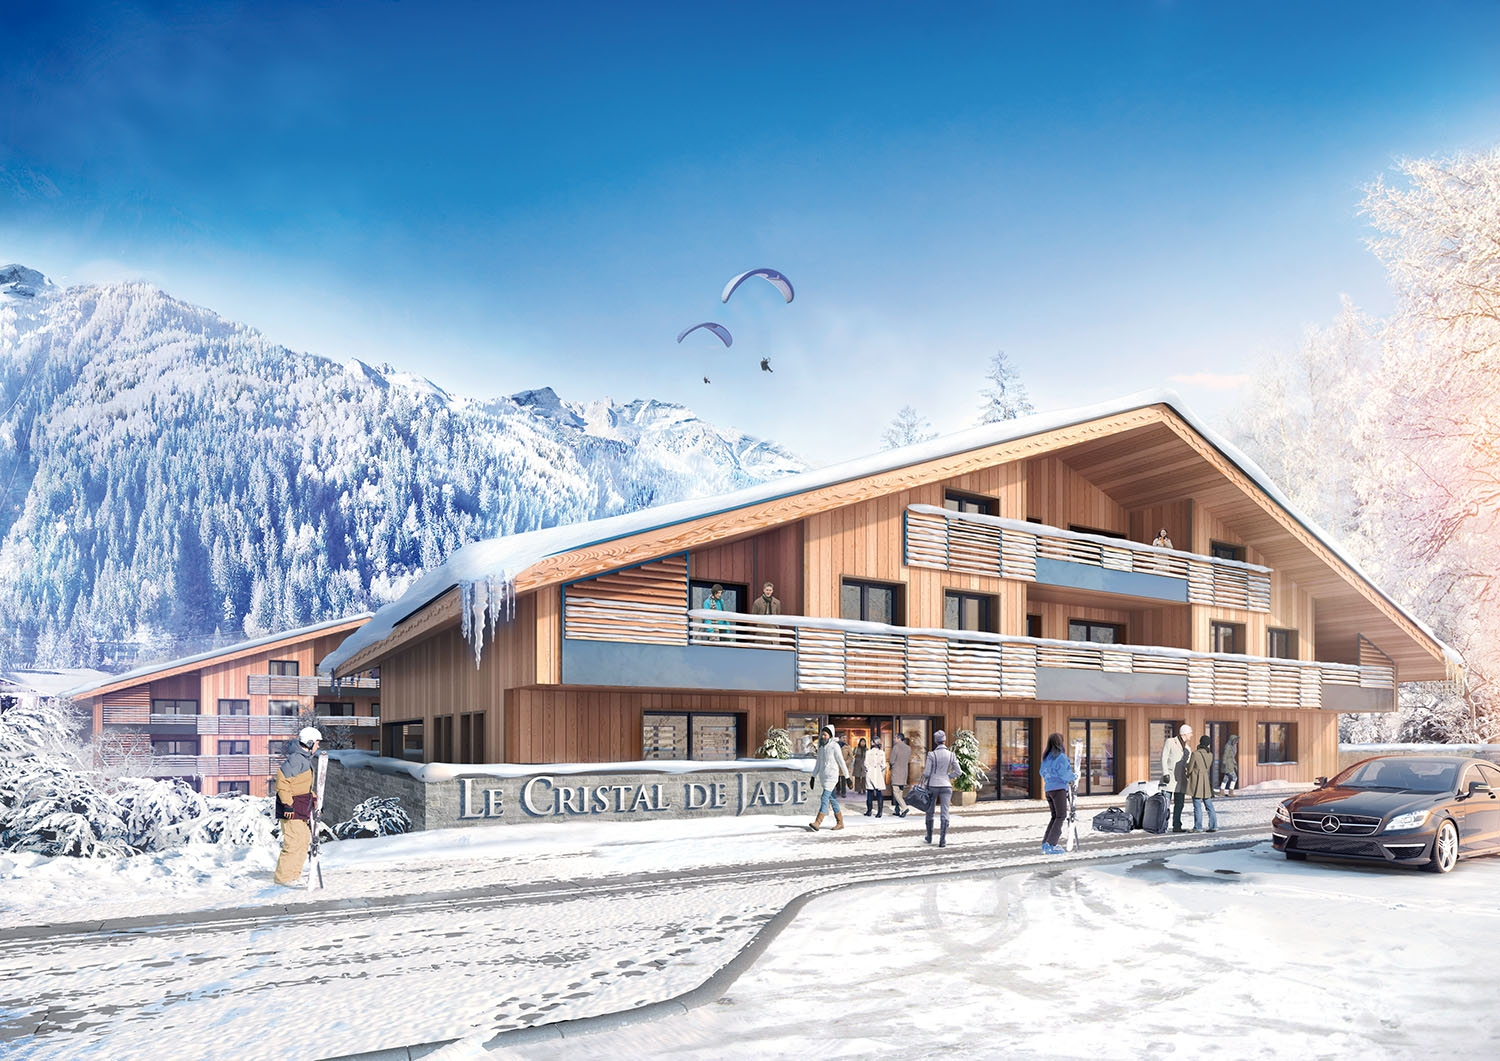 Brits flock to buy new apartments in Chamonix